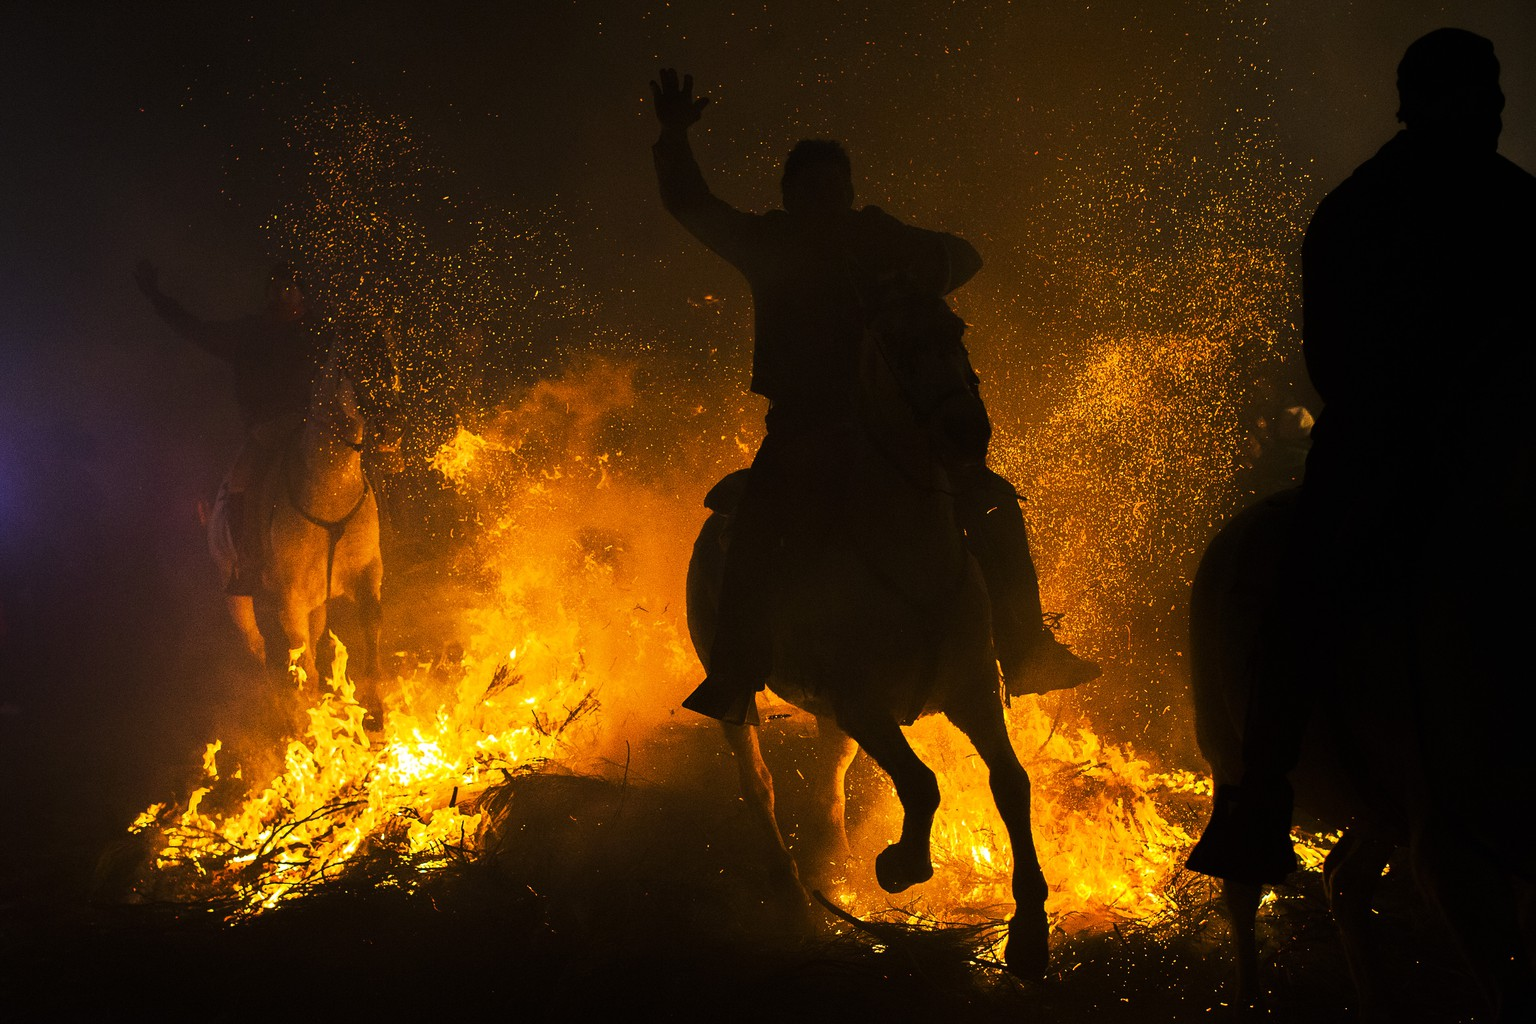 Men ride horses through a bonfire as part of a ritual in honor of Saint Anthony the Abbot, the patron saint of domestic animals, in San Bartolome de Pinares, about 100 kilometers (62 miles) west of Madrid, Spain on Friday, Jan. 16, 2015. On the eve of Saint Anthony's Day, hundreds ride their horses through the narrow cobblestone streets of the small village of San Bartolome during the